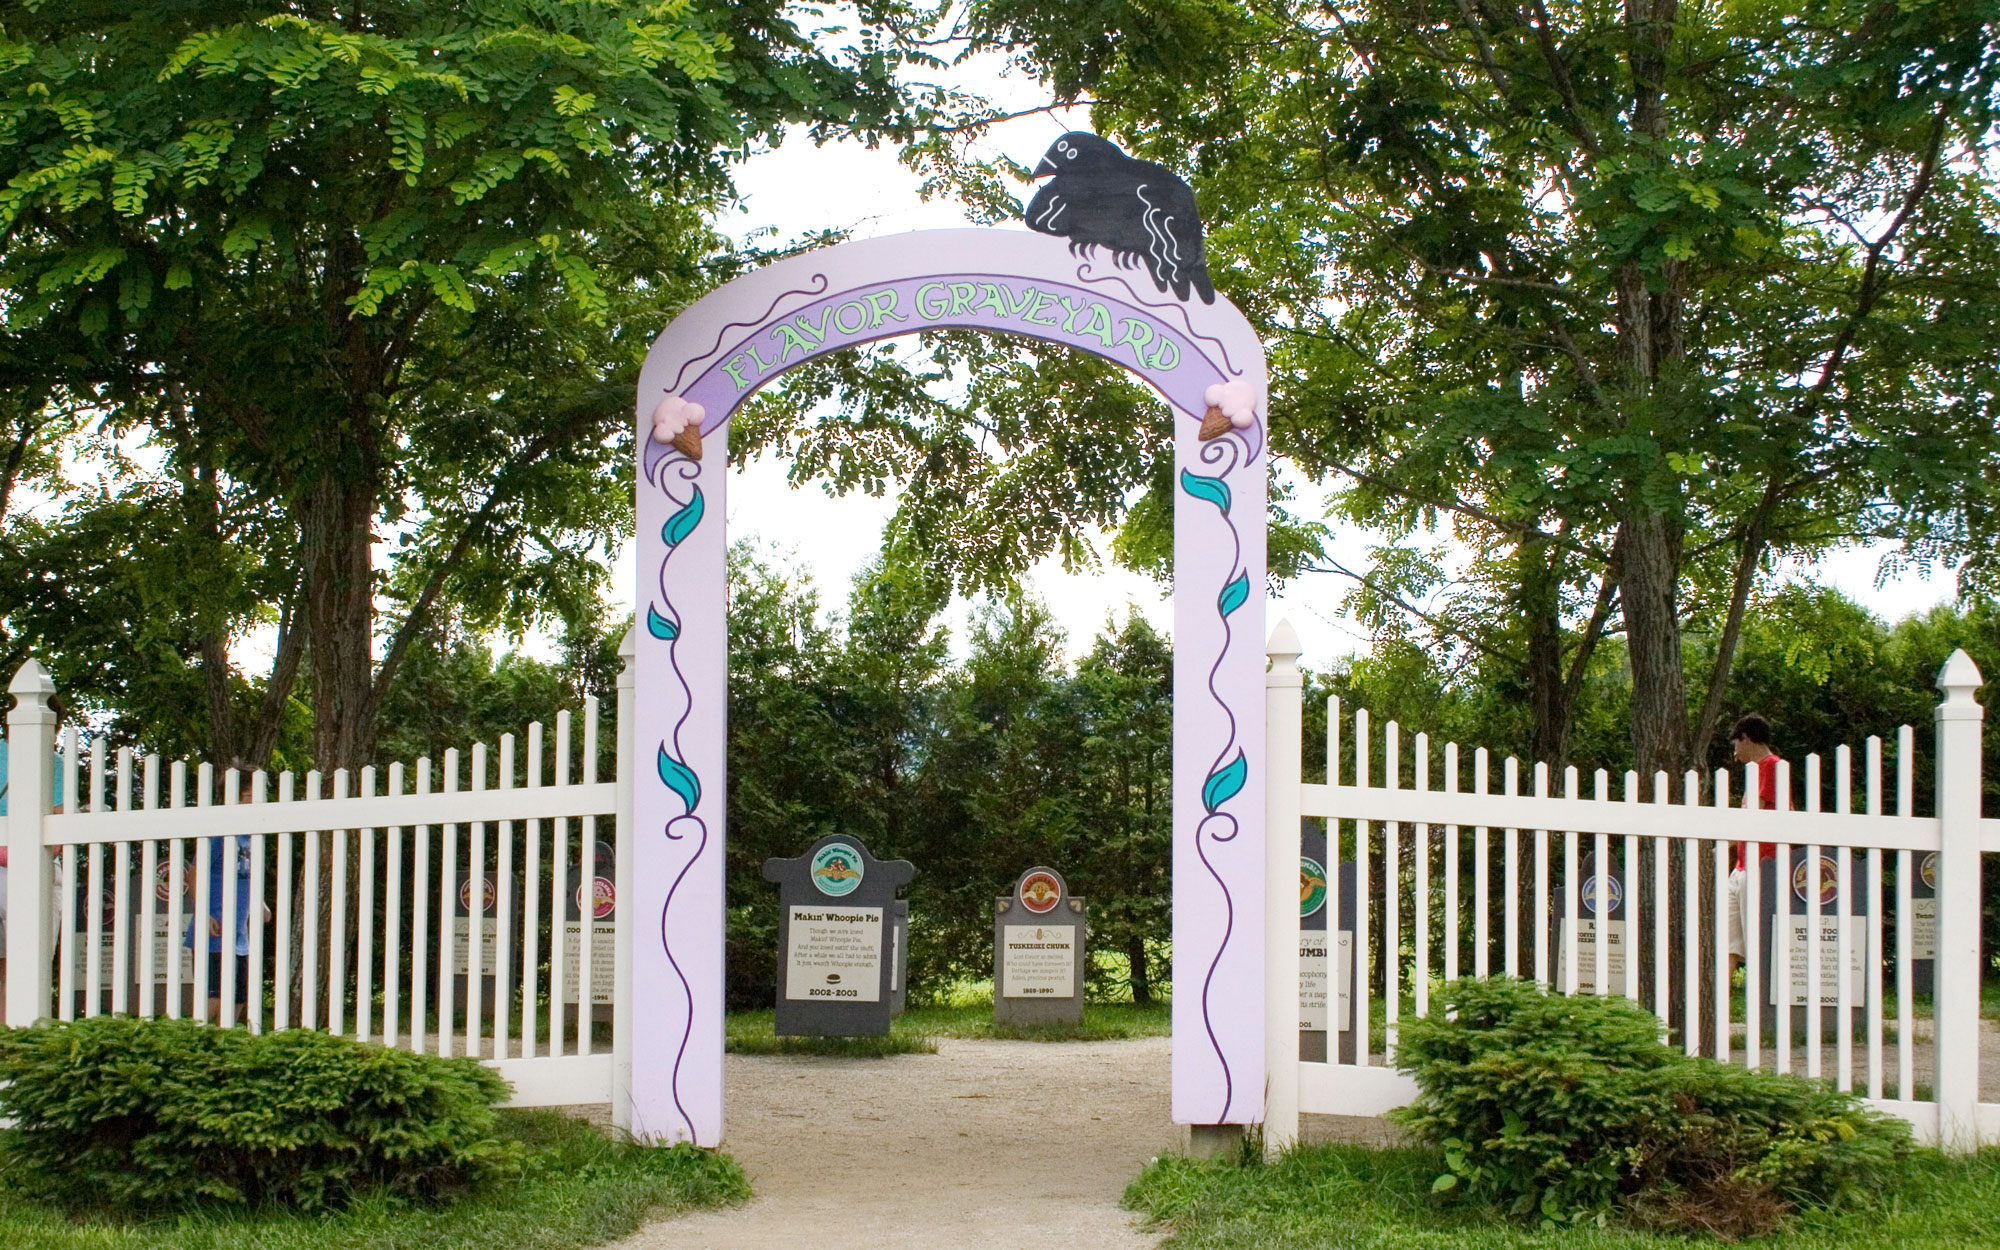 Weirdest Roadside Attractions: Vermont: Ben and Jerry's Flavor Graveyard